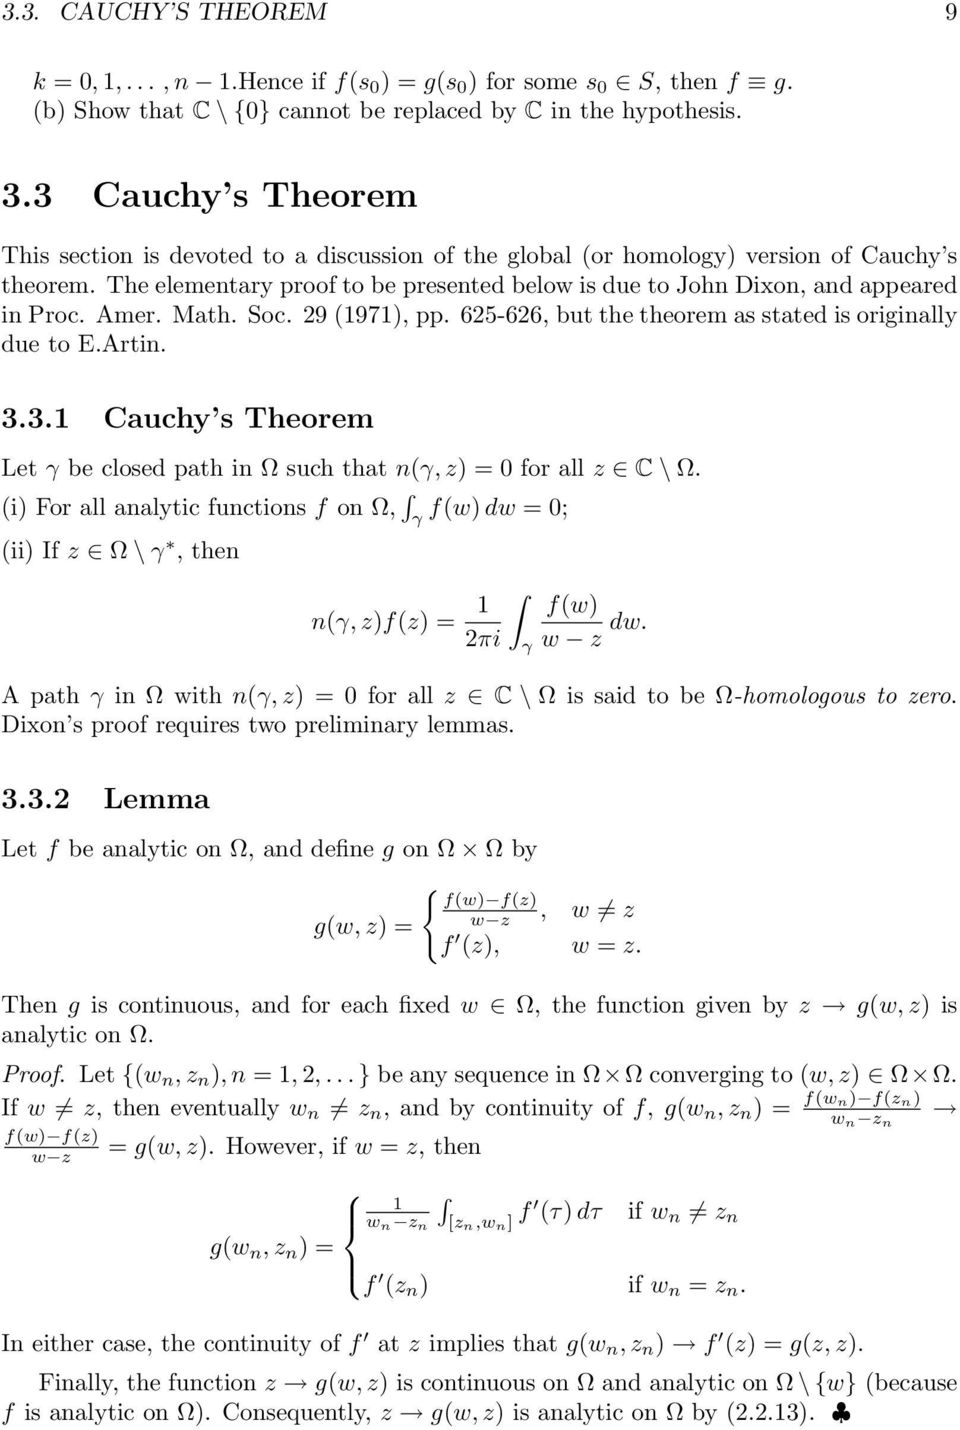 The elementary proof to be presented below is due to John Dixon, and appeared in Proc. Amer. Math. Soc. 29 (97), pp. 625-626, but the theorem as stated is originally due to E.Artin. 3.